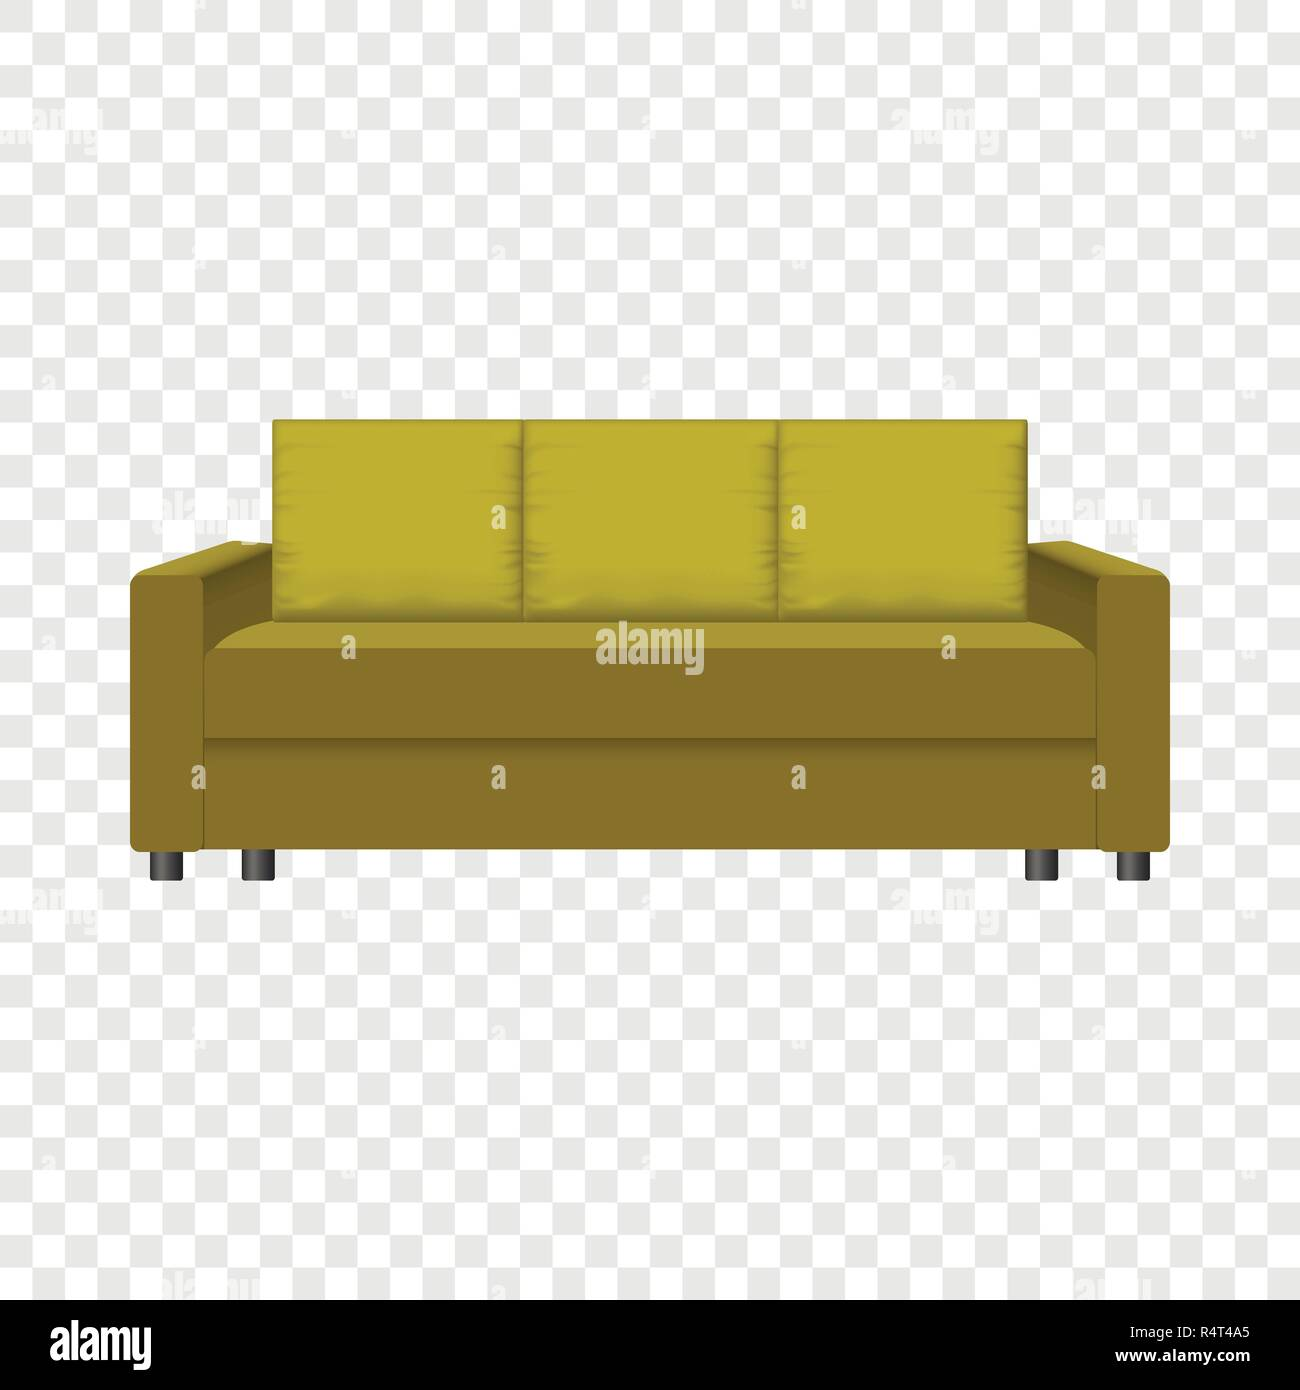 Retro Sofa Mockup Realistic Illustration Of Retro Sofa Vector